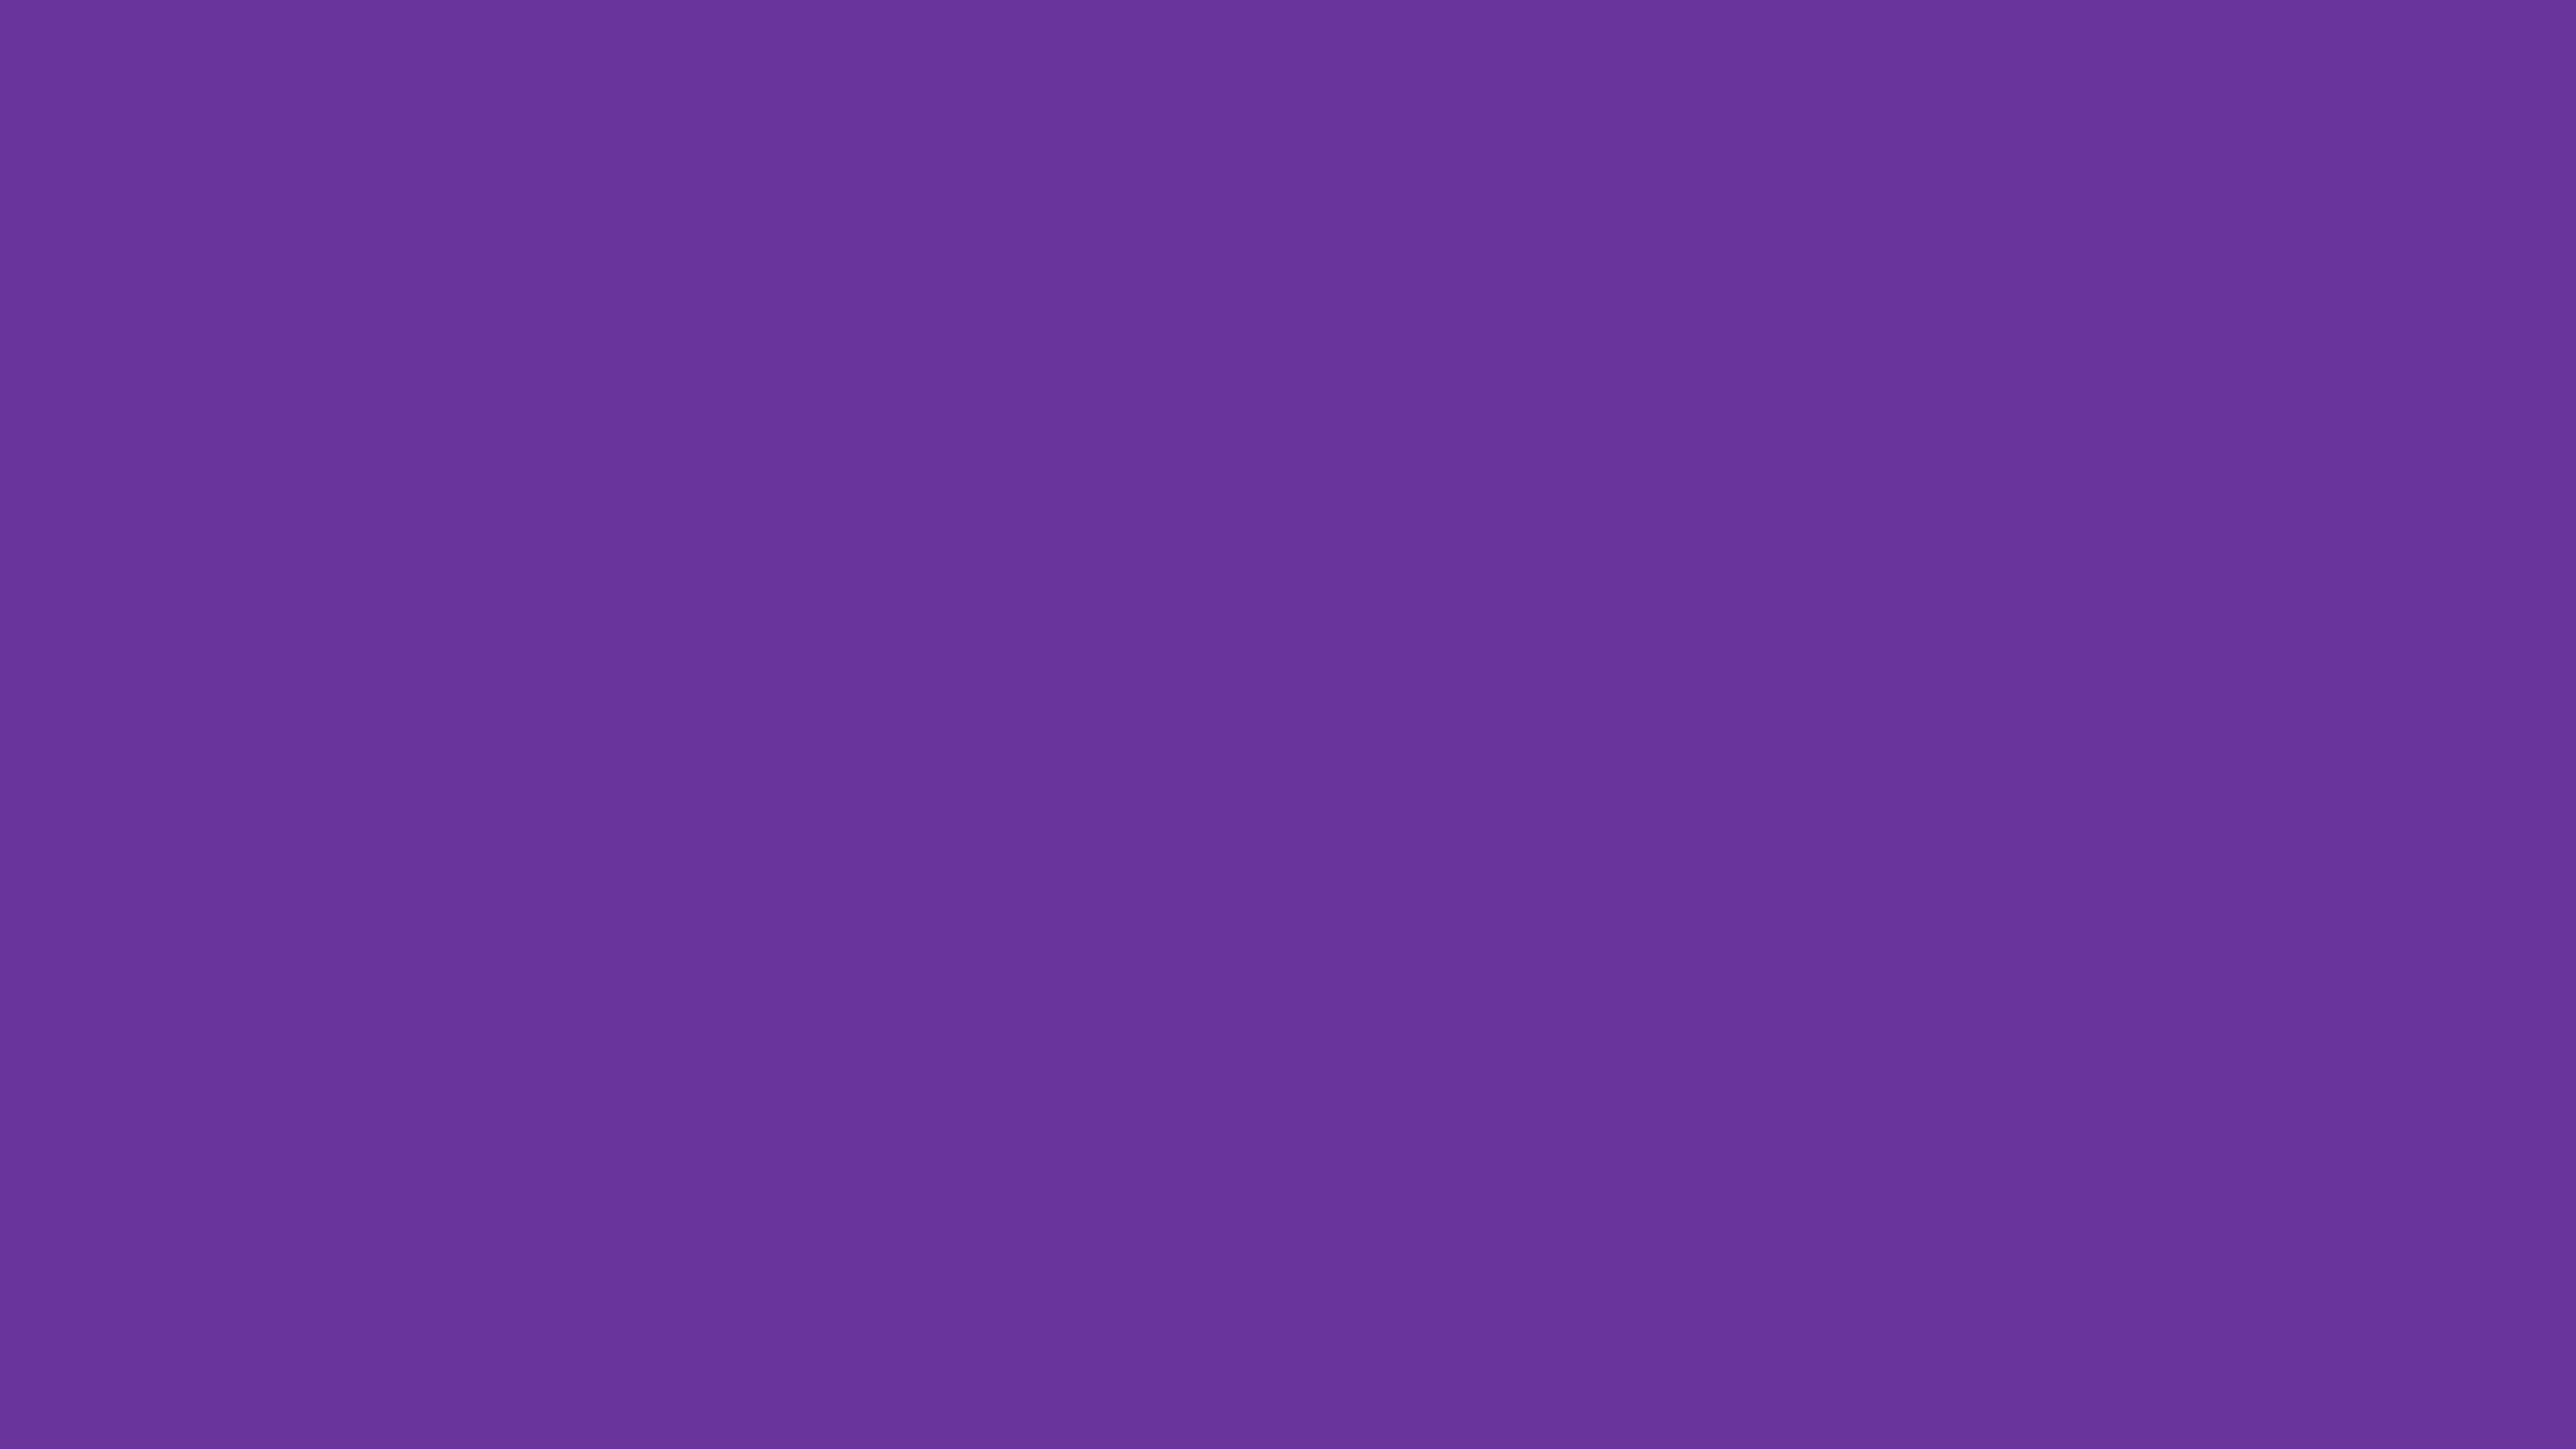 3840x2160 Purple Heart Solid Color Background